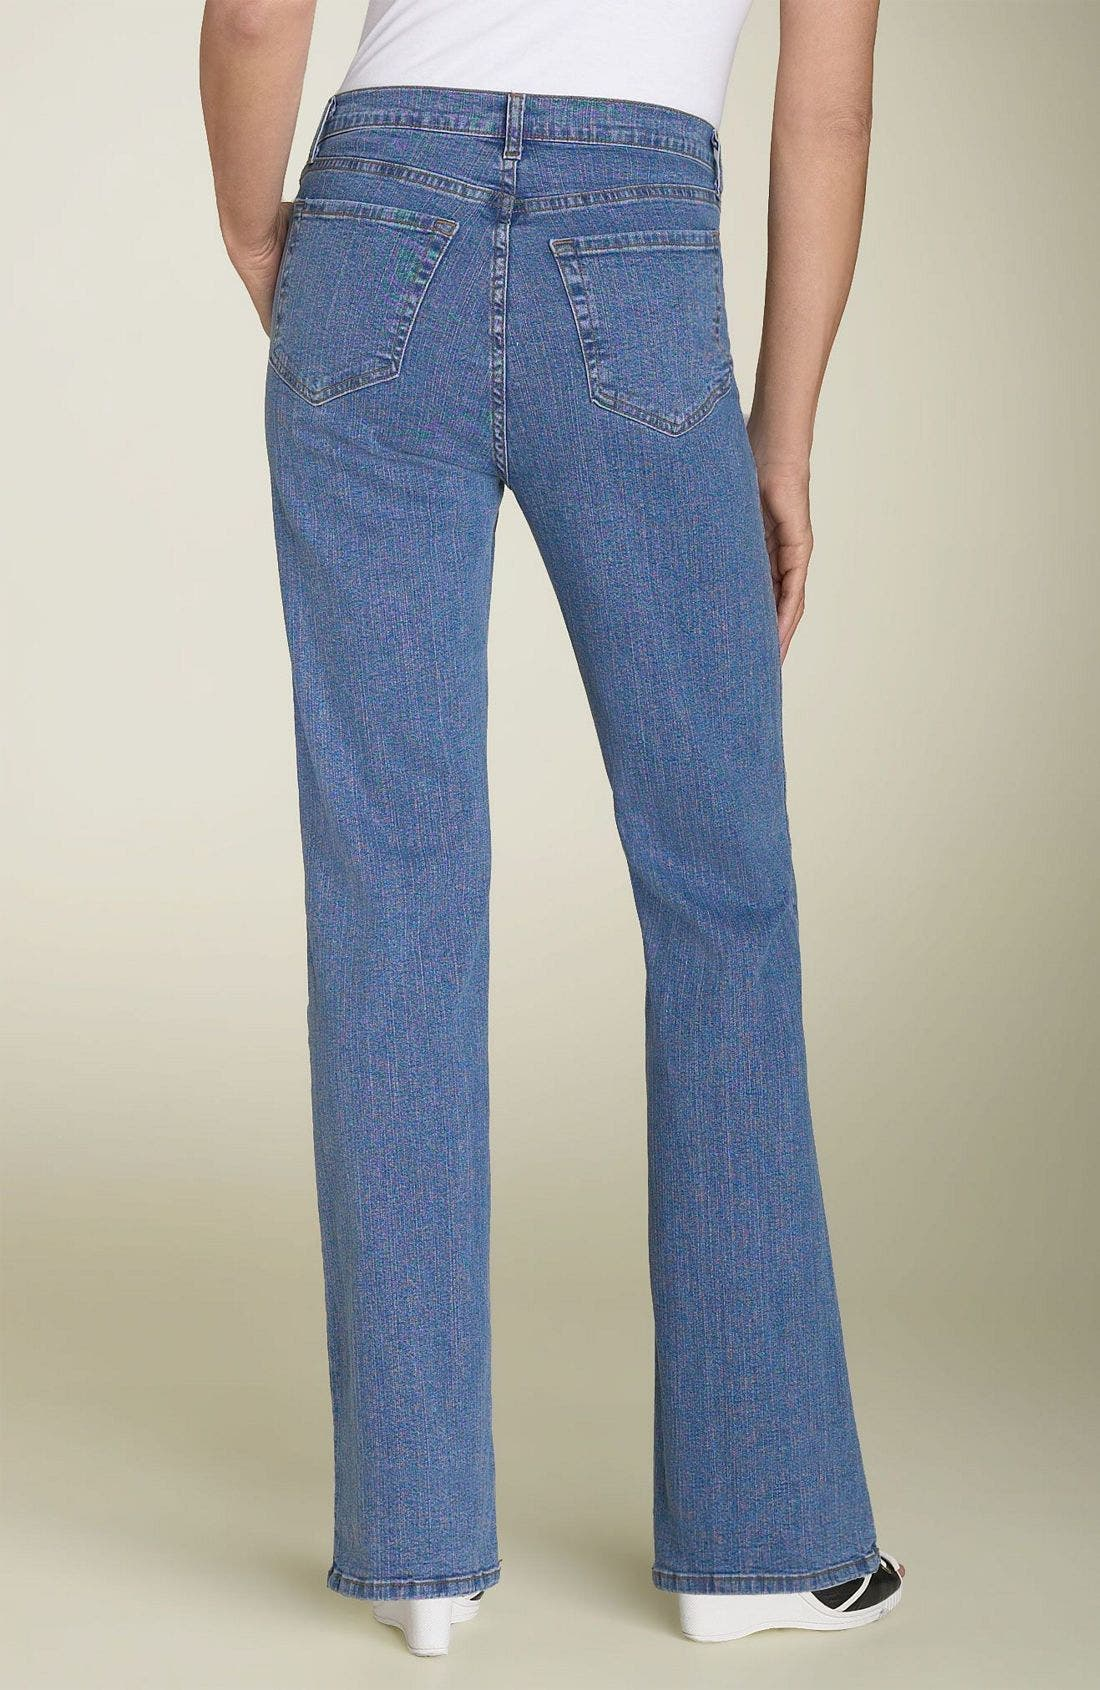 Alternate Image 2  - Not Your Daughter's Jeans Tummy Tuck Stretch Jeans (Petite)